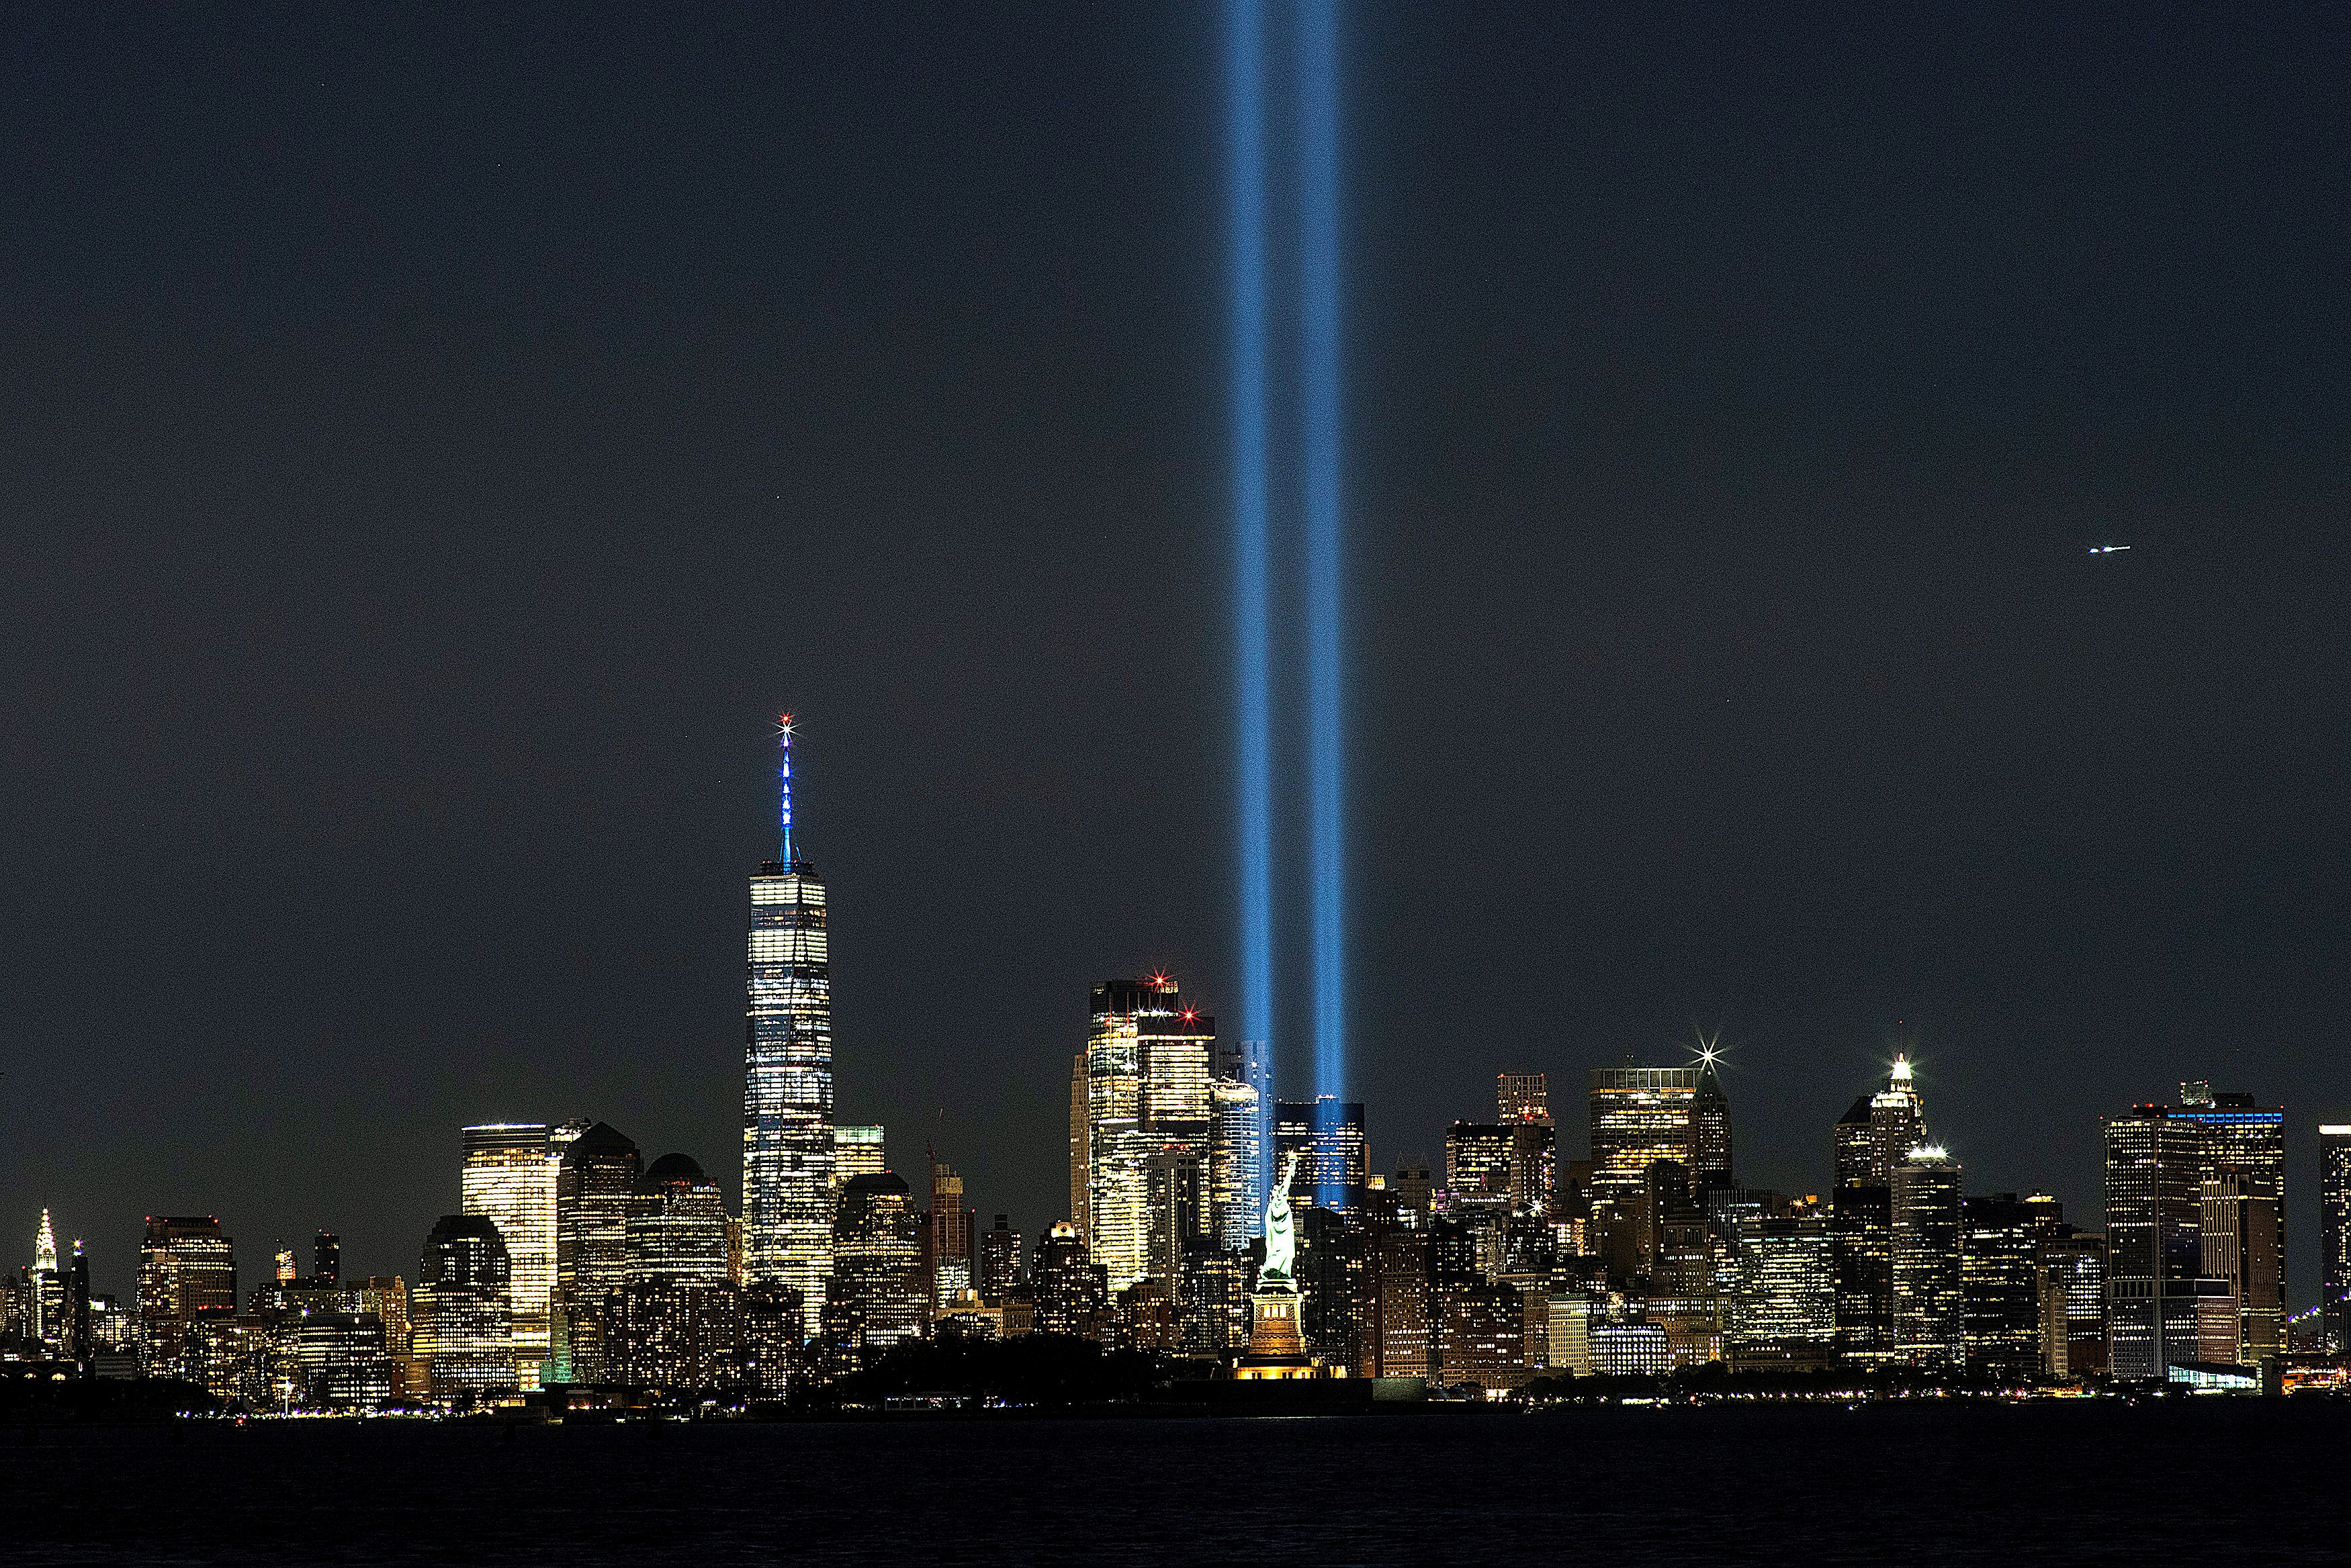 The Statue of Liberty and One World Trade Center are seen as the Tribute in Light shines in downtown Manhattan.